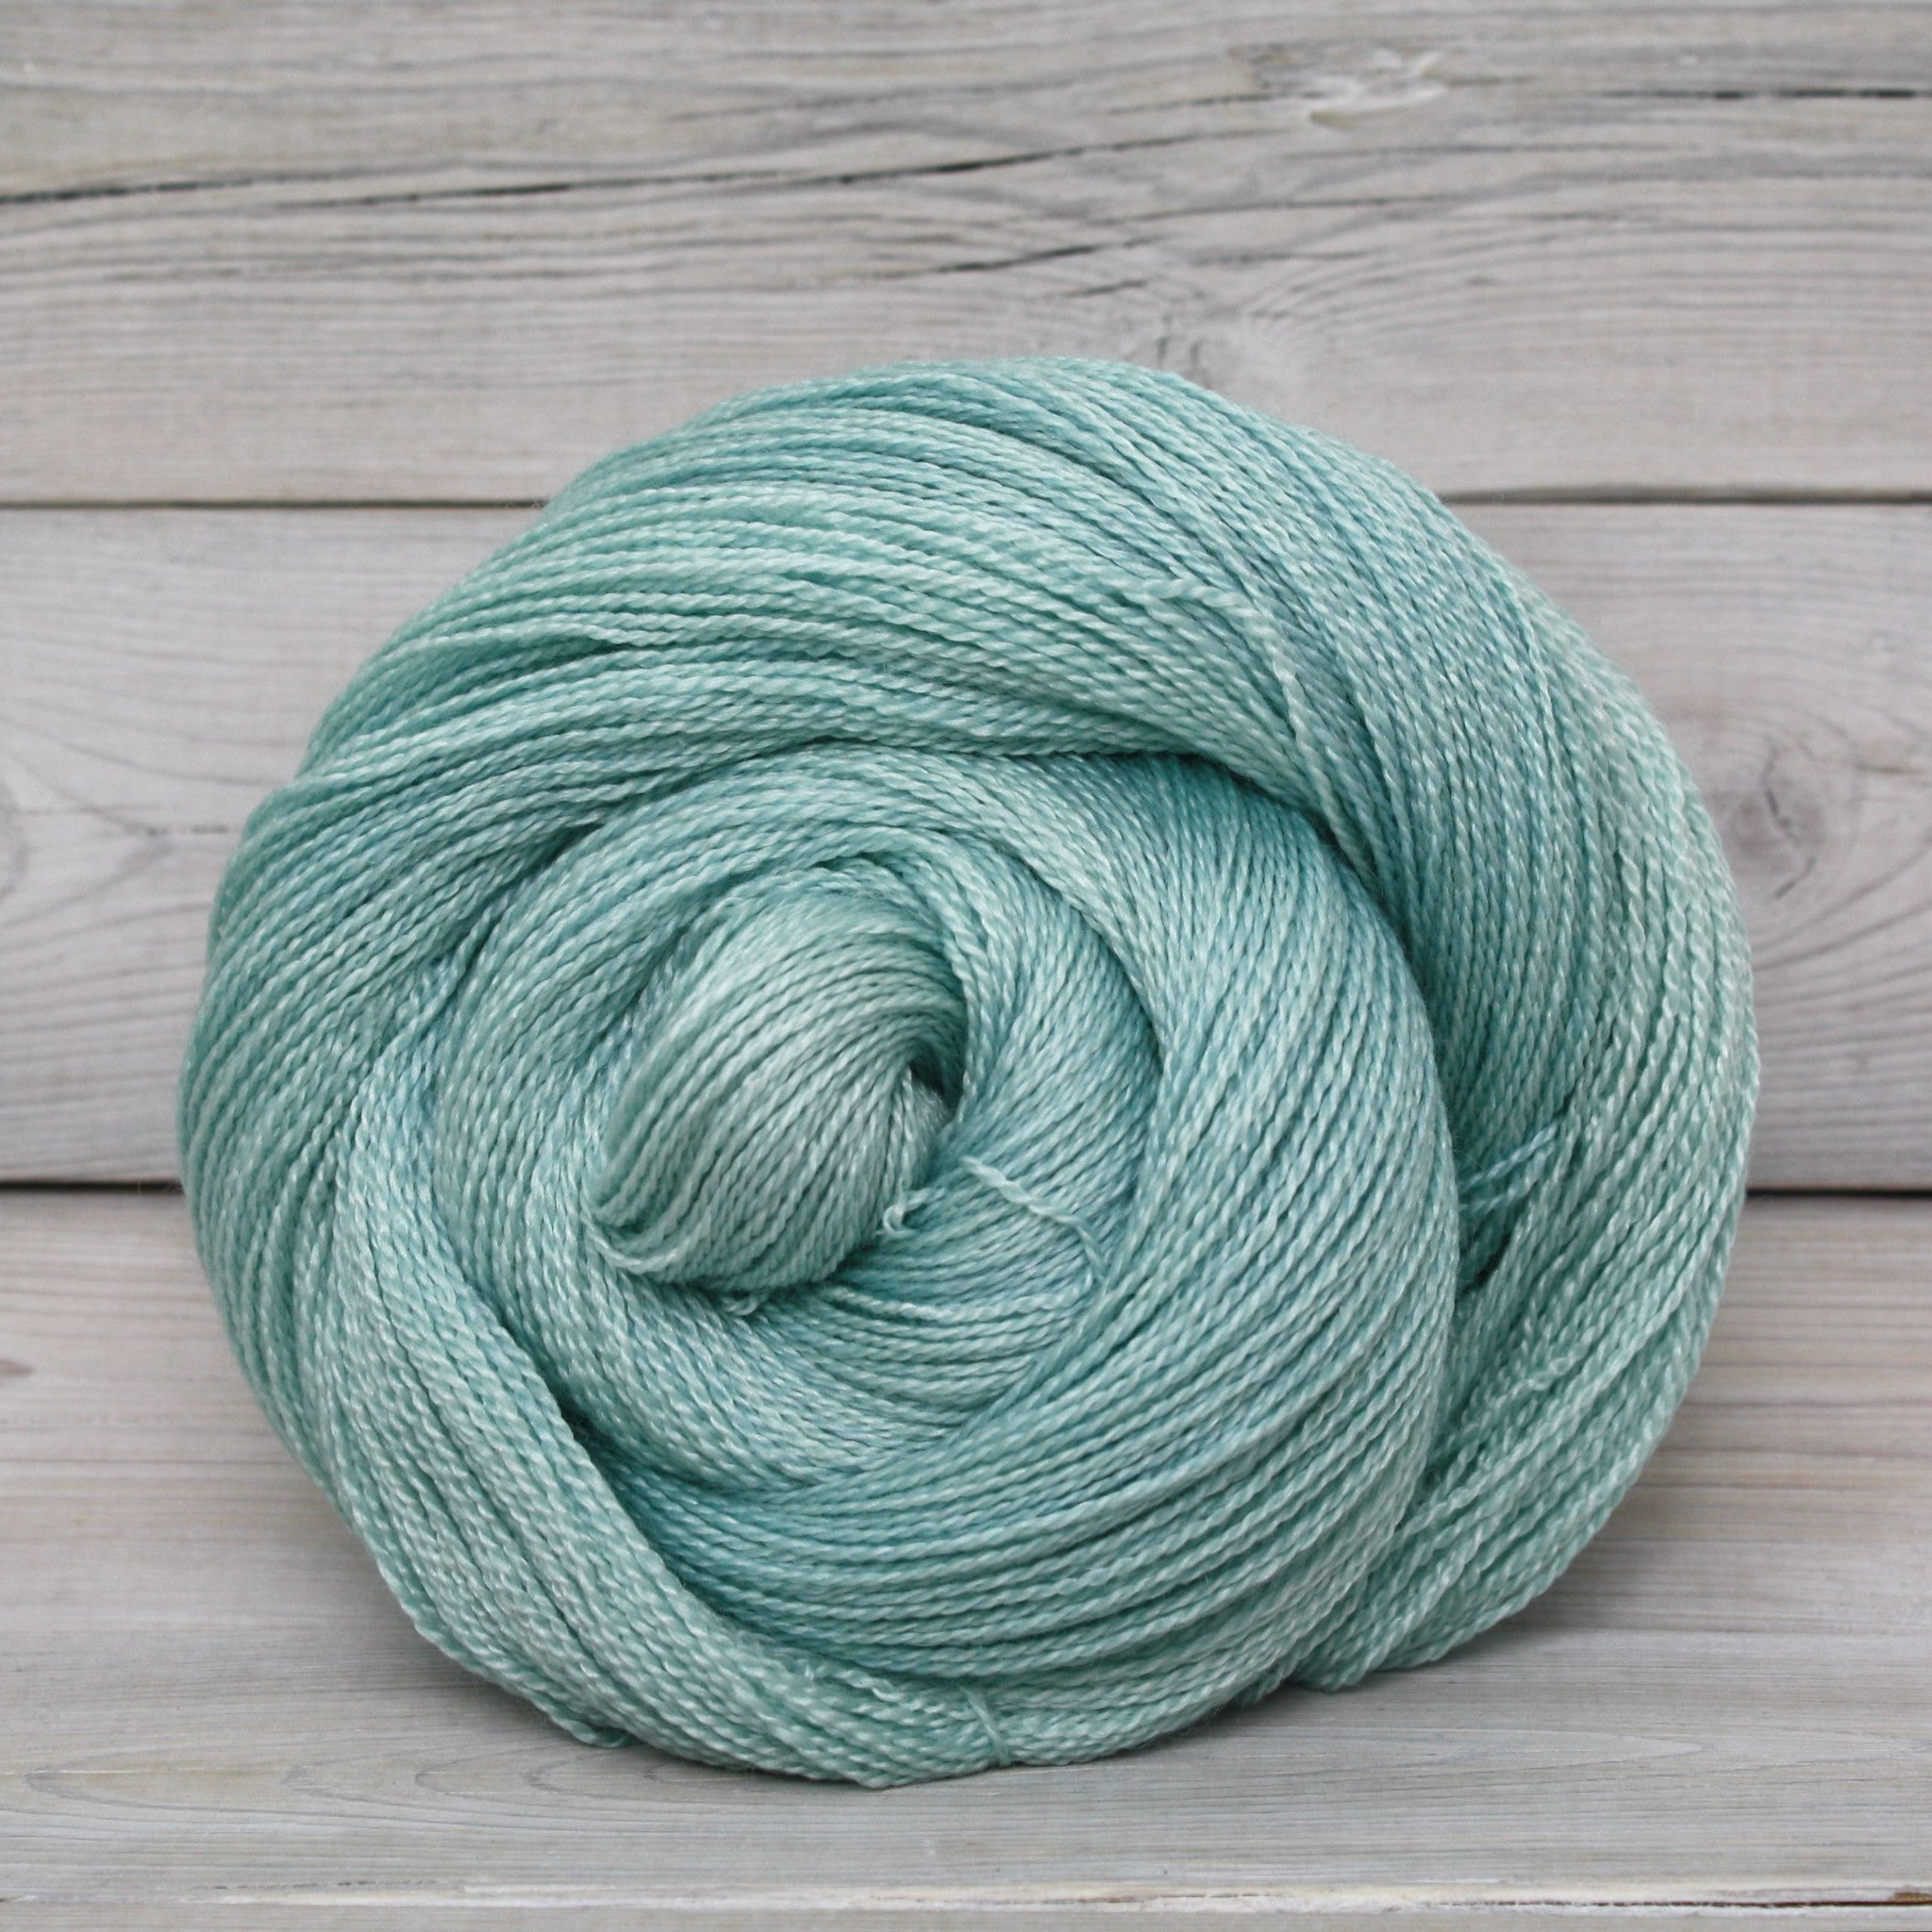 luna grey fiber arts starbright yarn | colorway: araucana